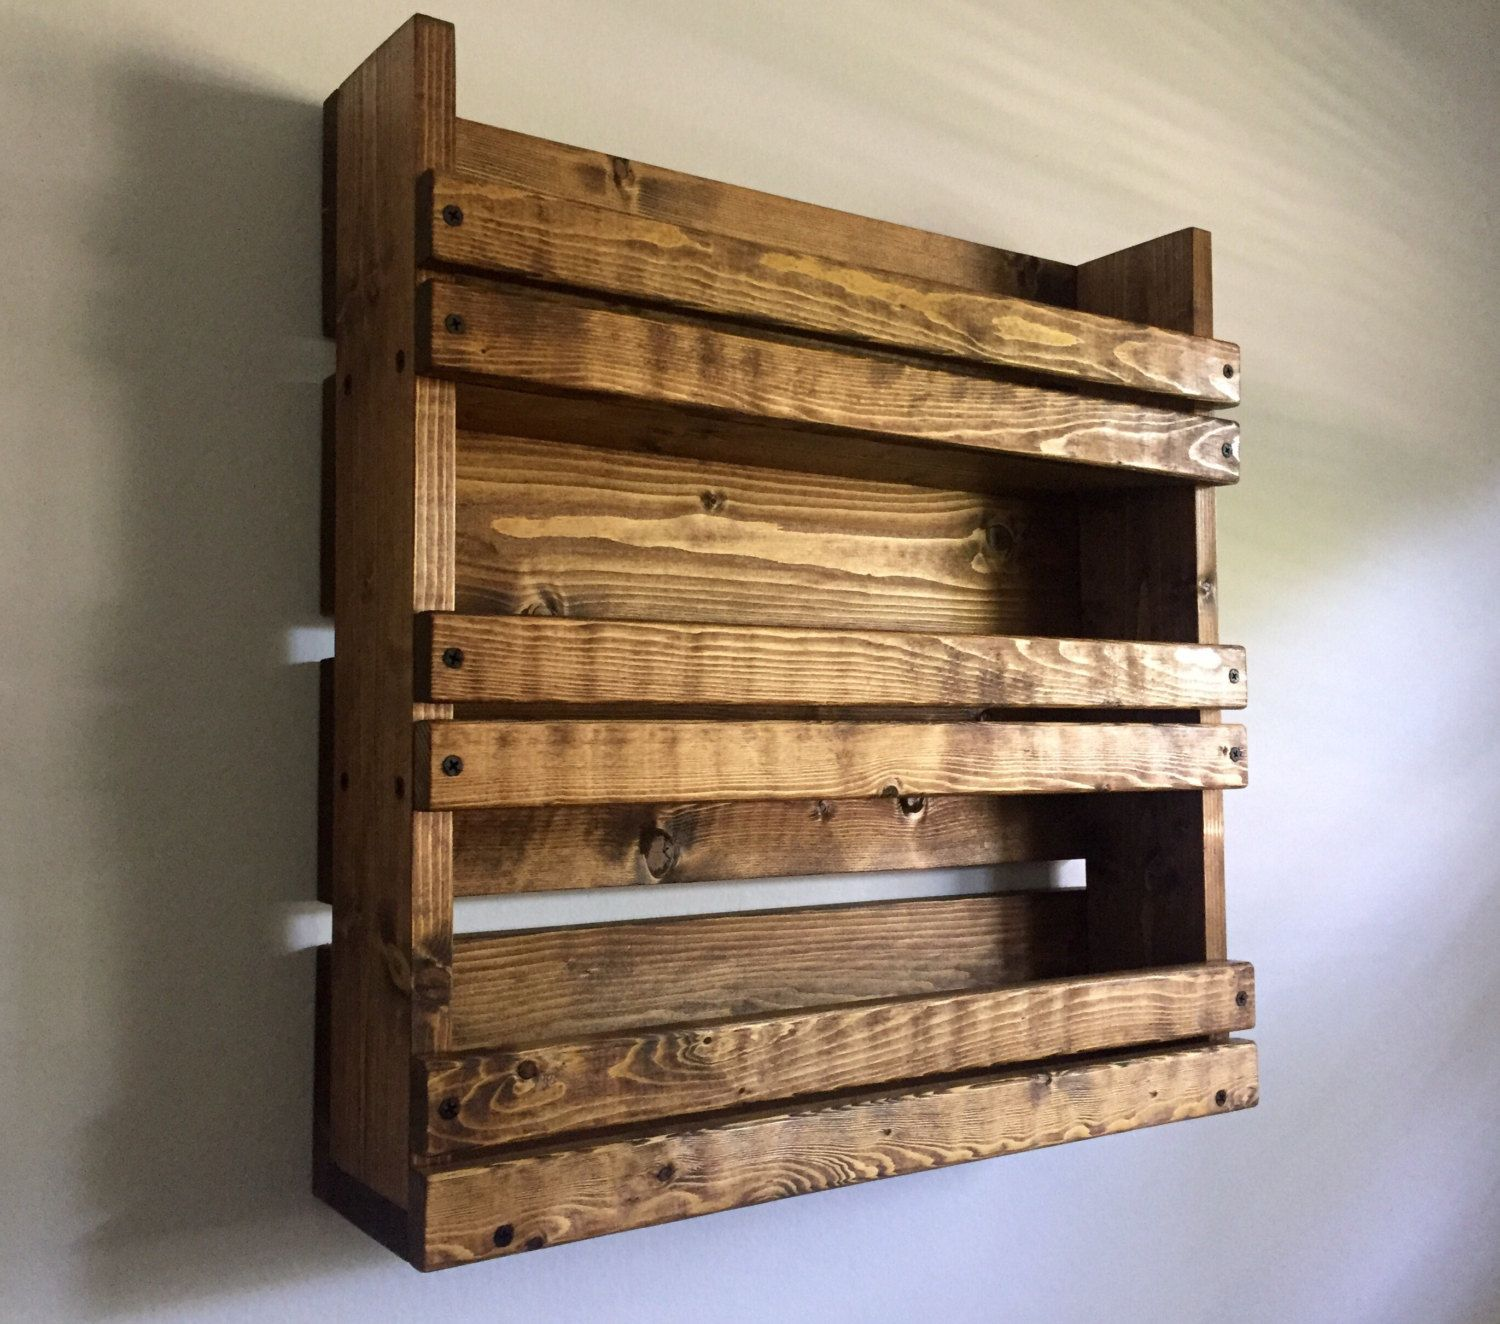 Wood Spice Rack For Wall Spice Rack Rustic Spice Rack With 3 Shelves Kitchen Organizer